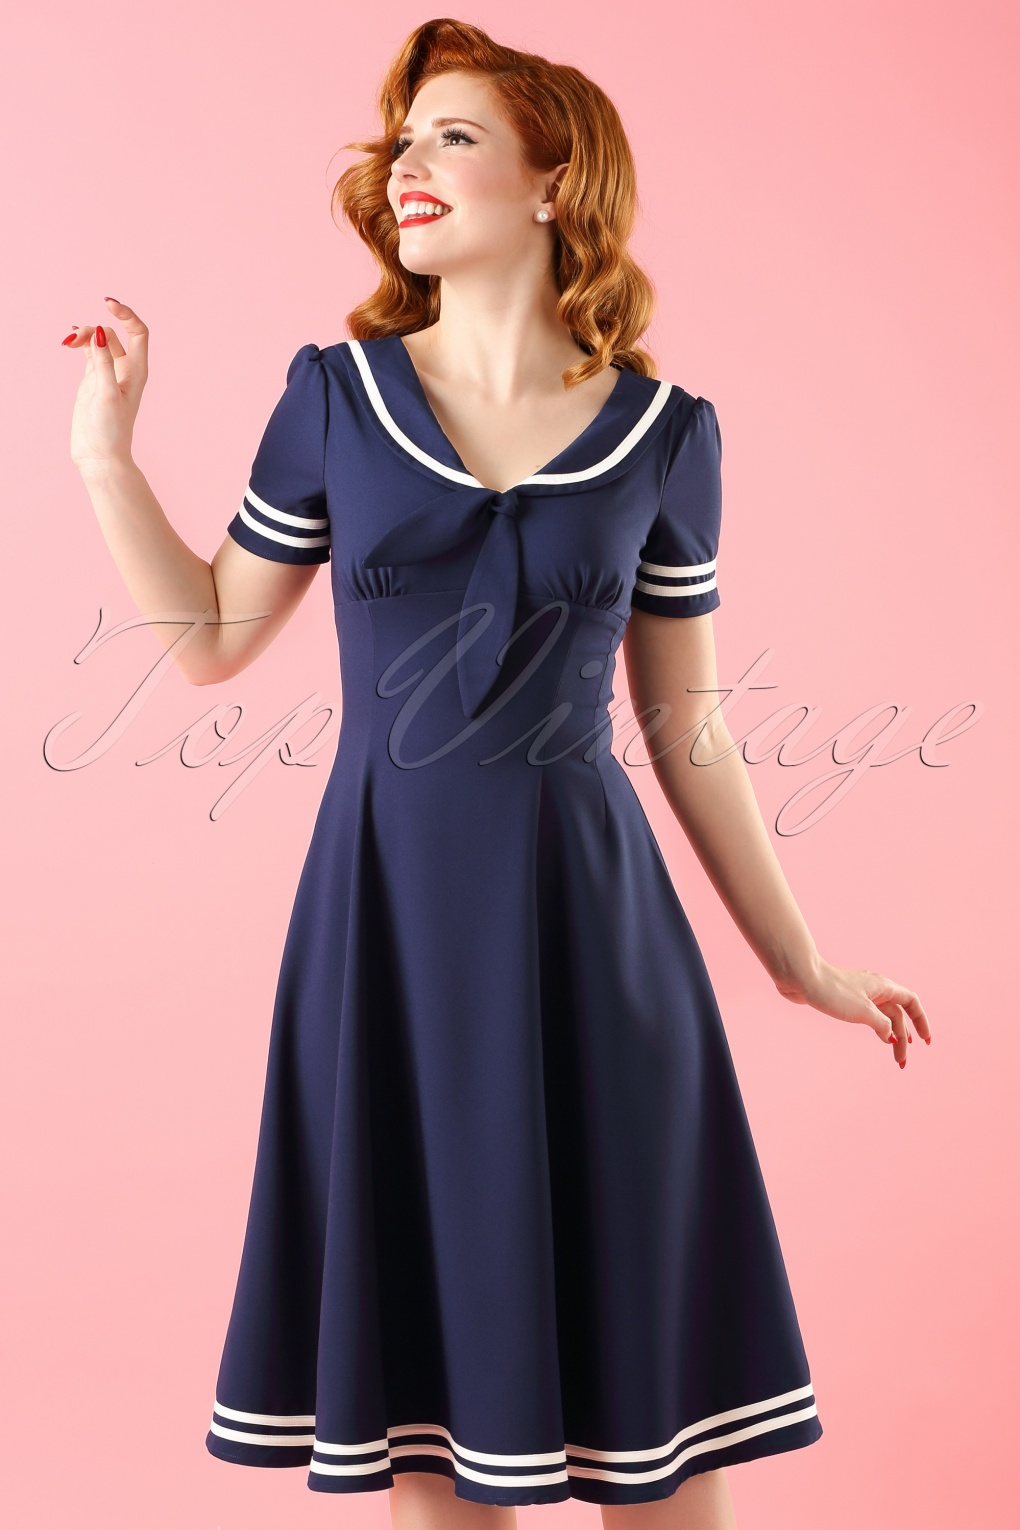 Sailor Dresses, Nautical Theme Dress, WW2 Dresses 50s Ambleside Swing Dress in Navy £53.51 AT vintagedancer.com